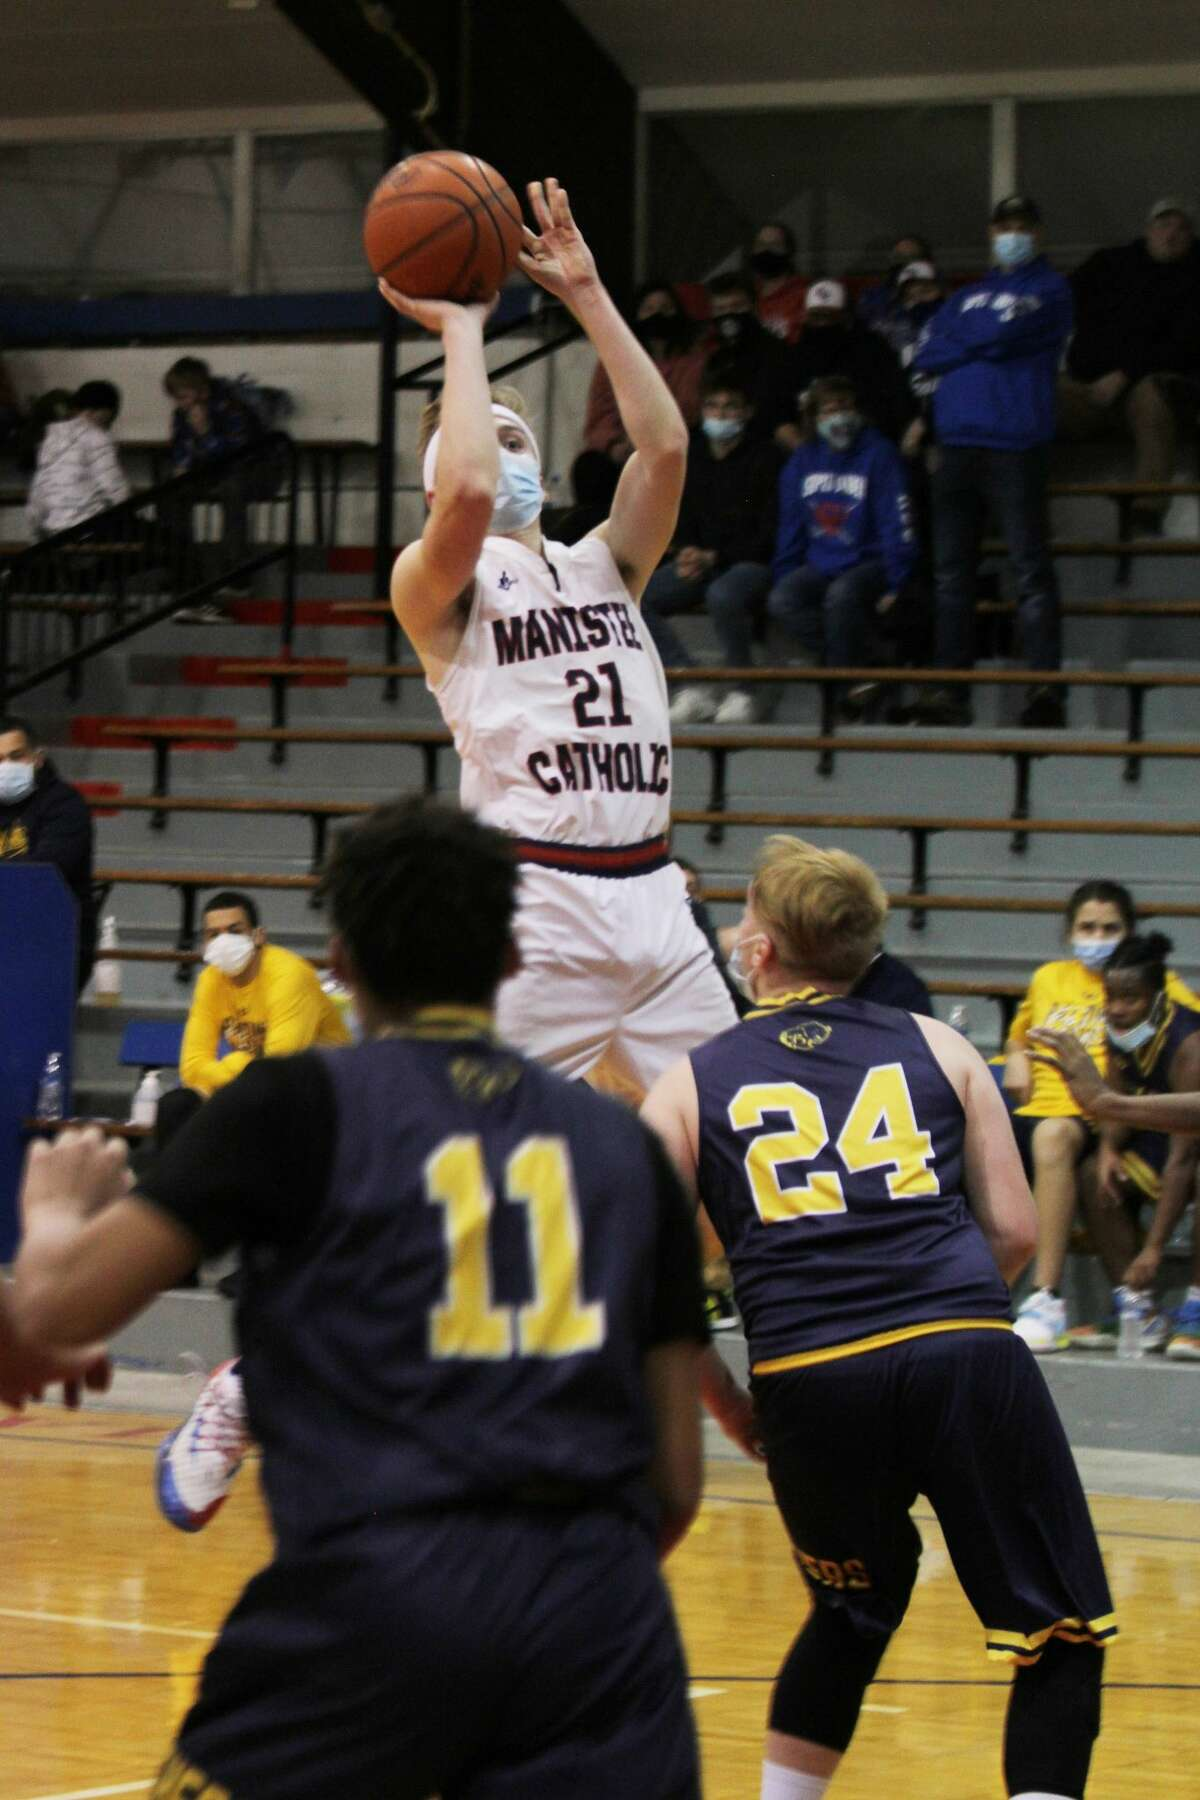 After a slow start this season, MCC began to pick up steam, stringing together a 5-2 stretch from mid-February to early March. The Sabers won their last two regular season games for a 7-8 overall record before falling to Buckley in their district opener on March 23.